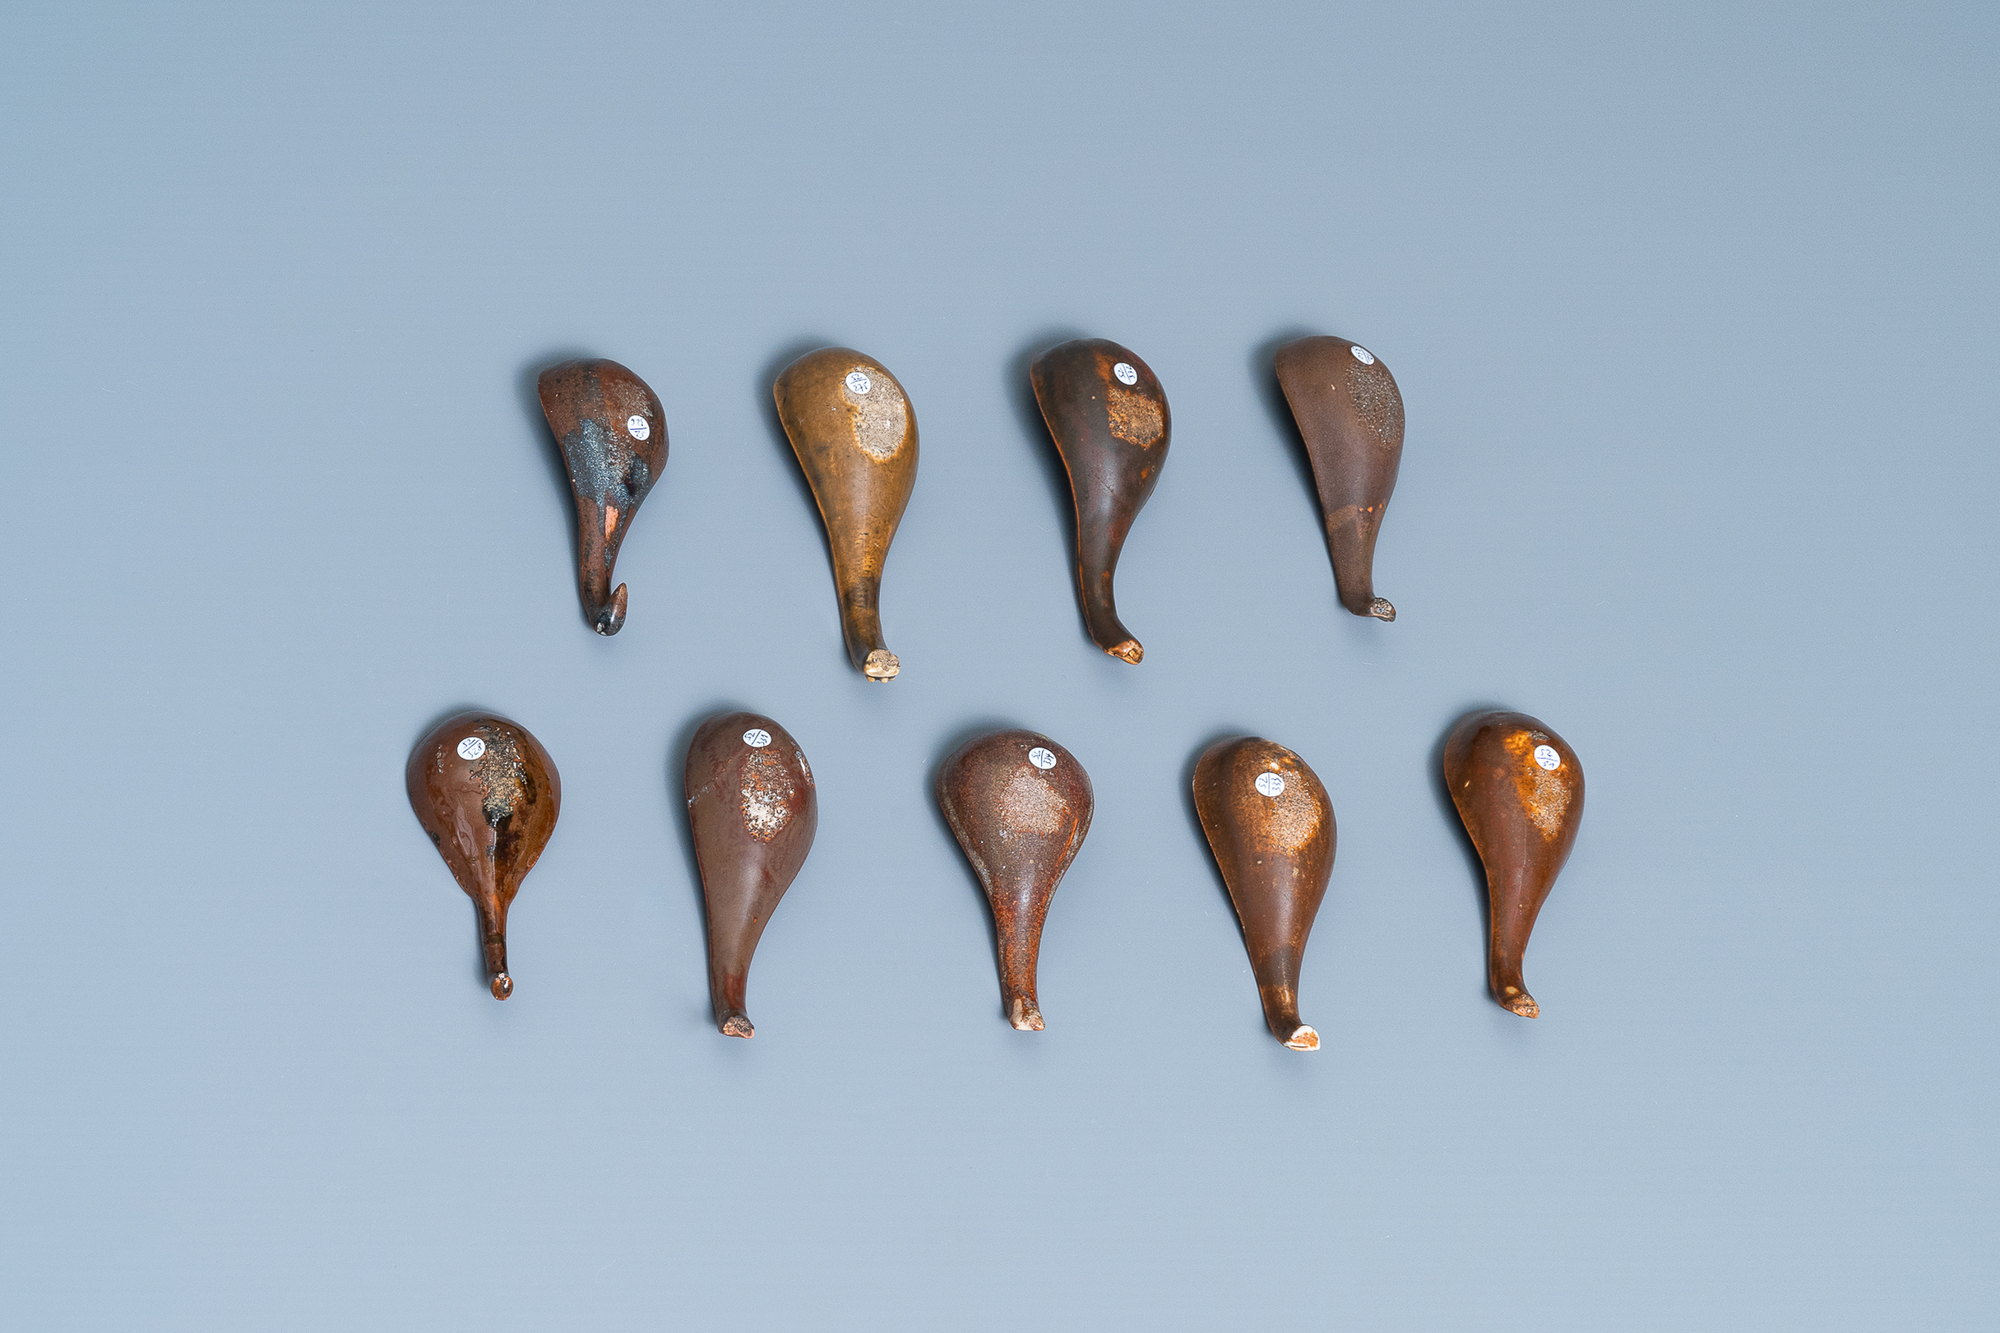 22 Chinese brown- and white-glazed spoons, 17/18th C. - Image 6 of 19